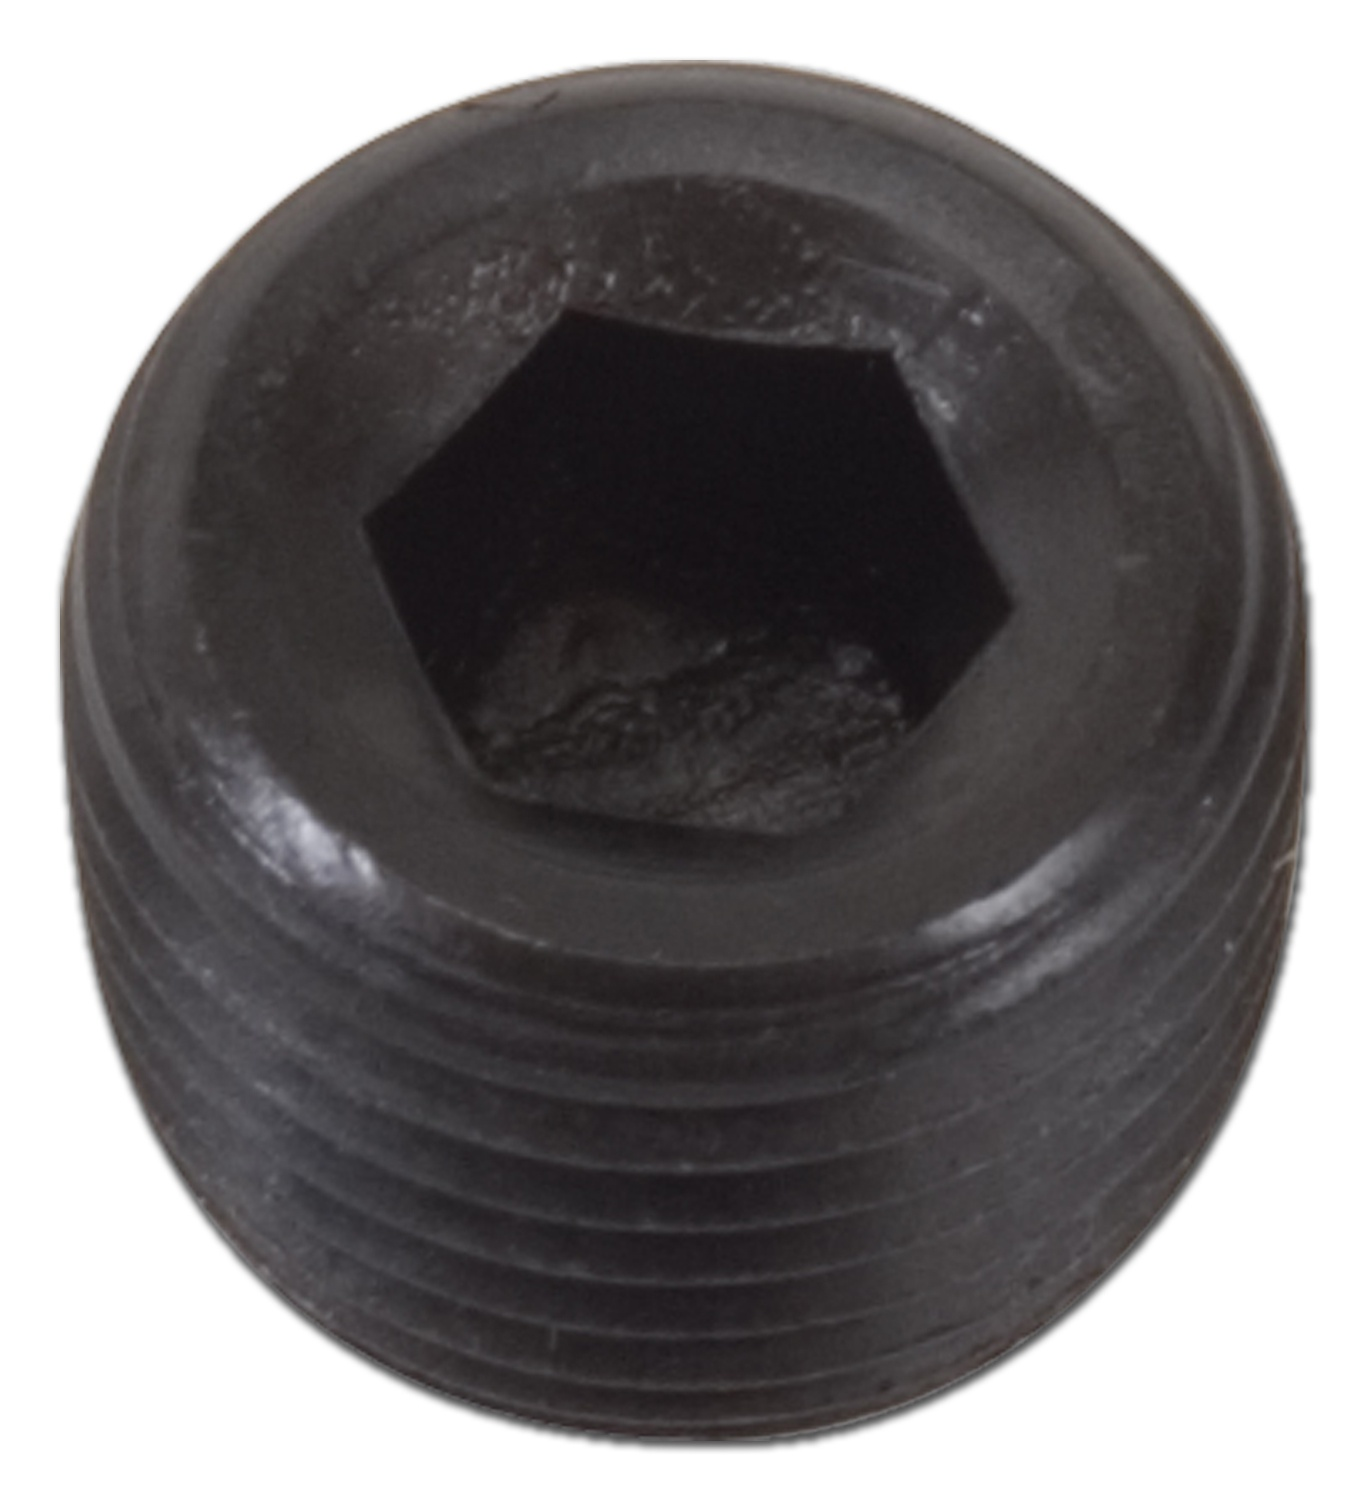 9126 Edelbrock Pipe Plug Fitting 1/2 Inch Fitting Size